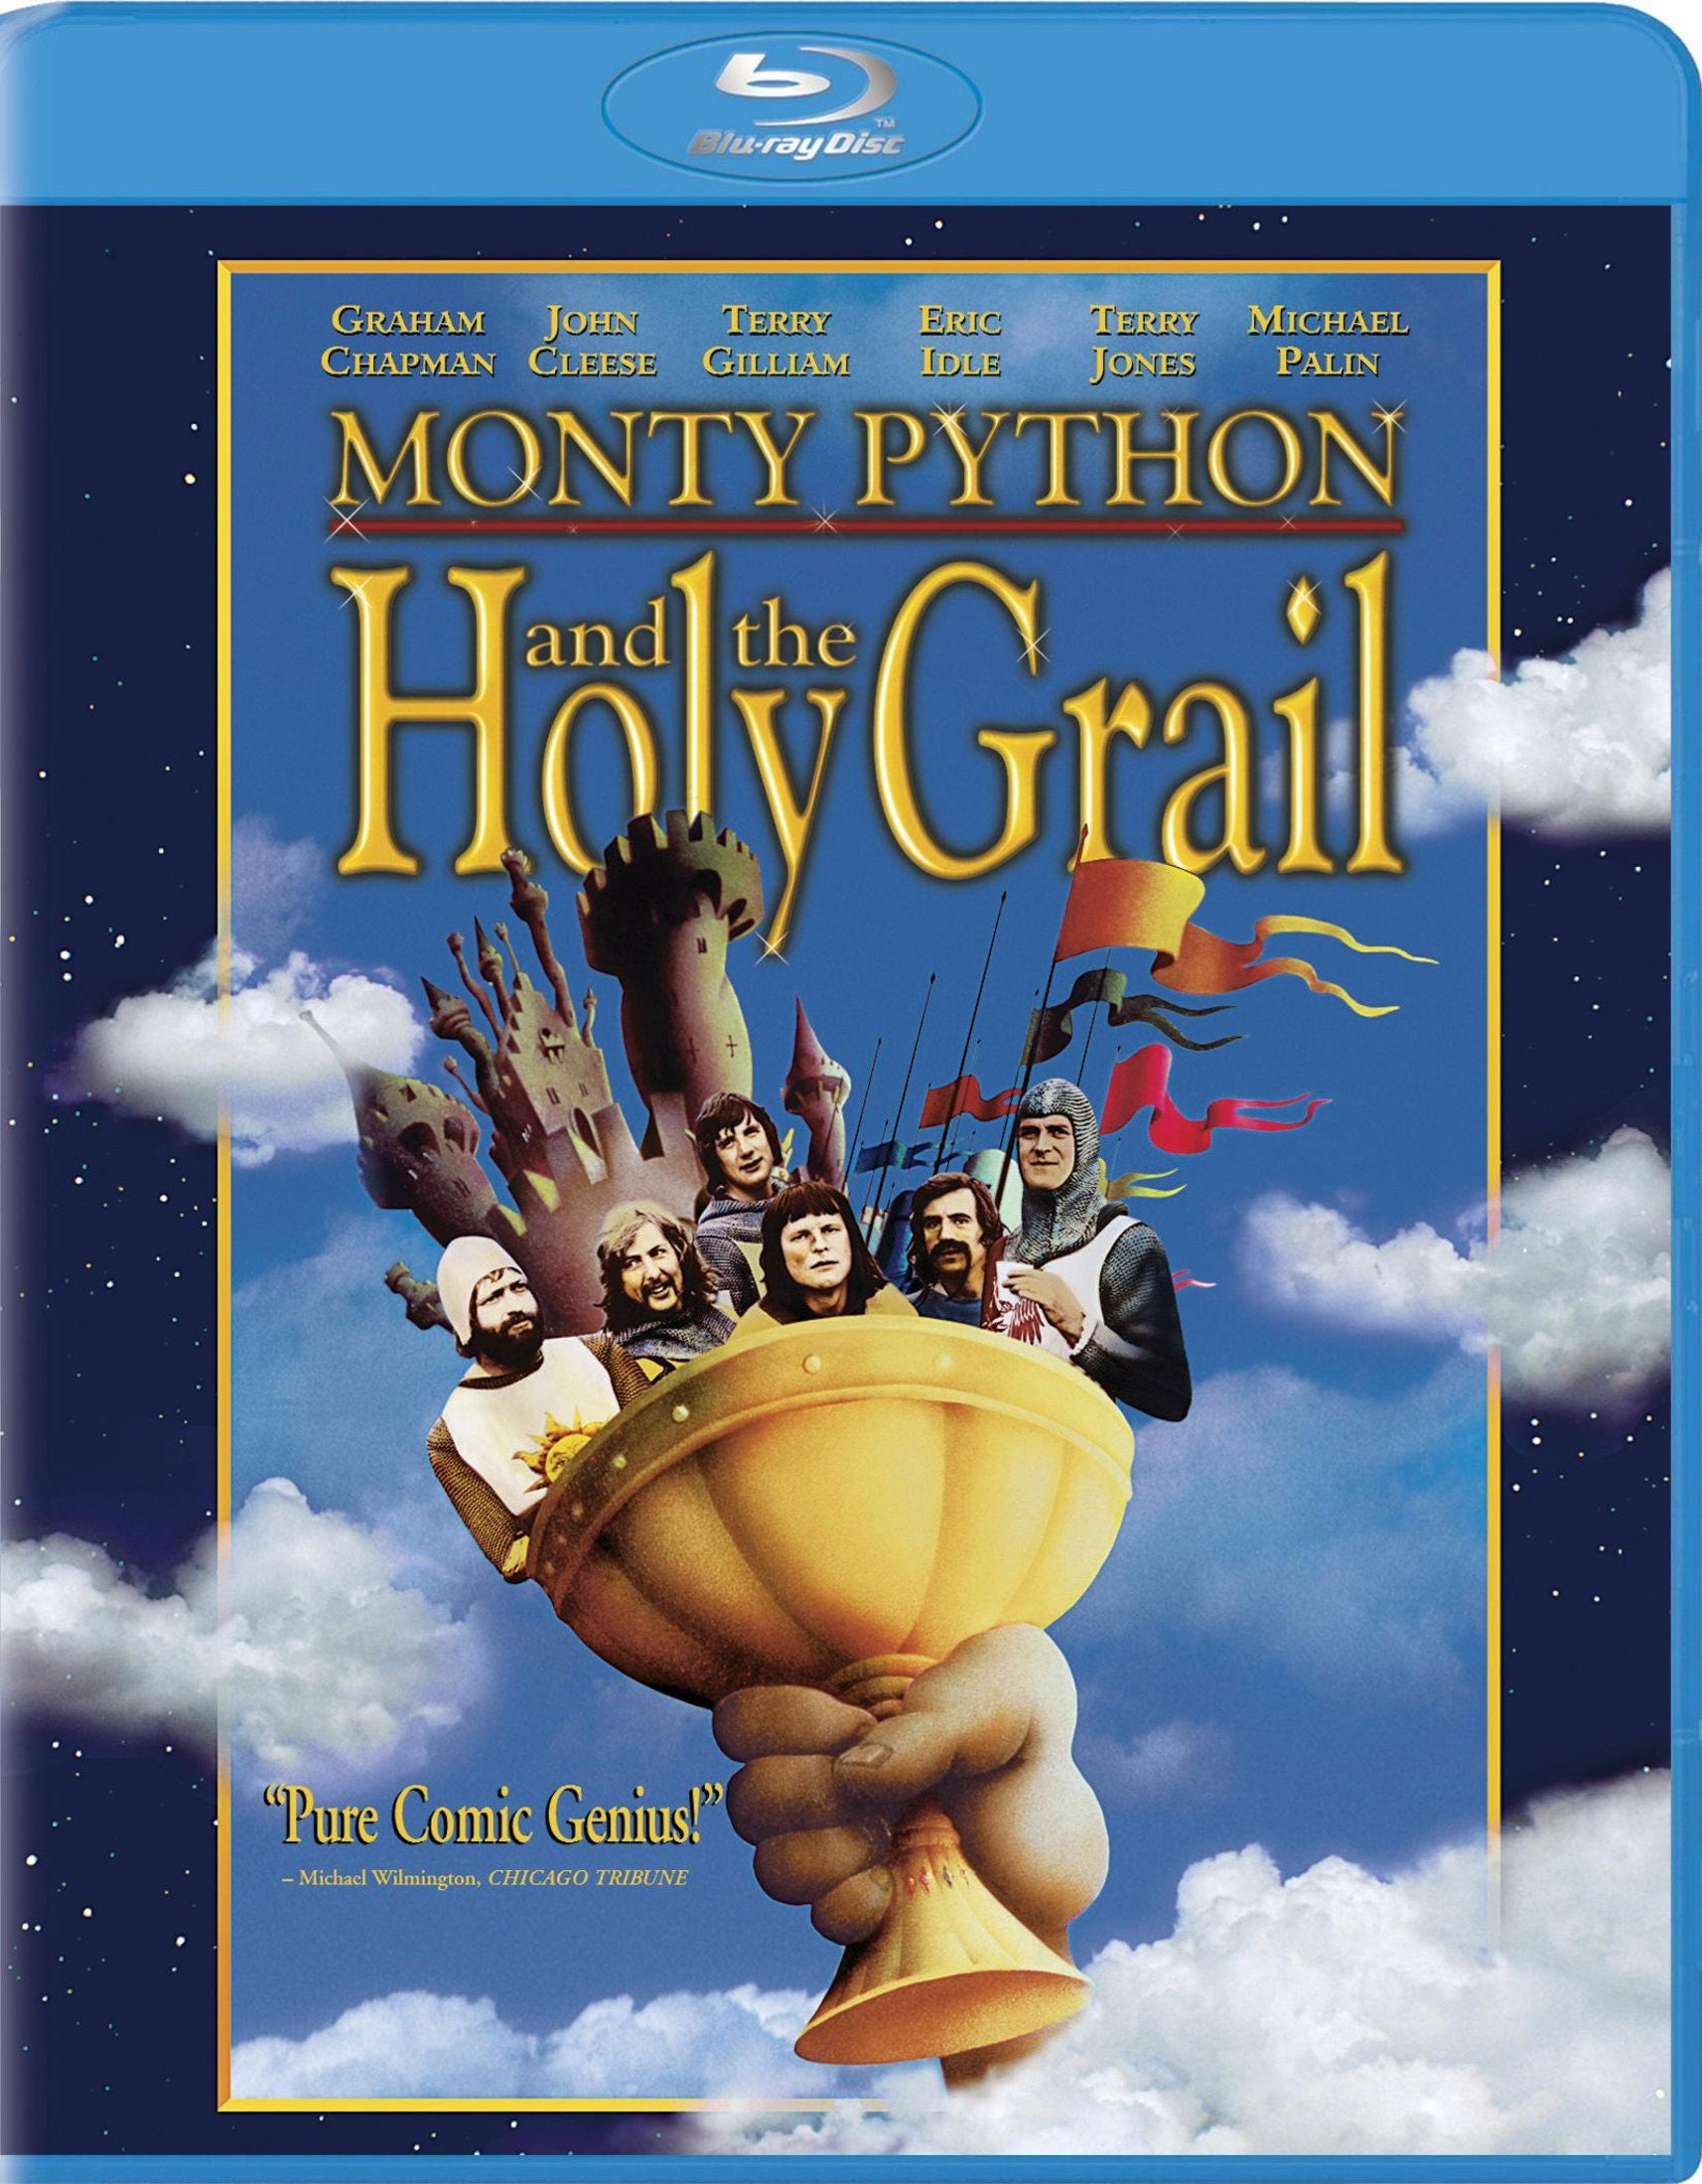 Monty Python and The Holy Grail (35th Anniversary Edition) (Blu-ray Disc)